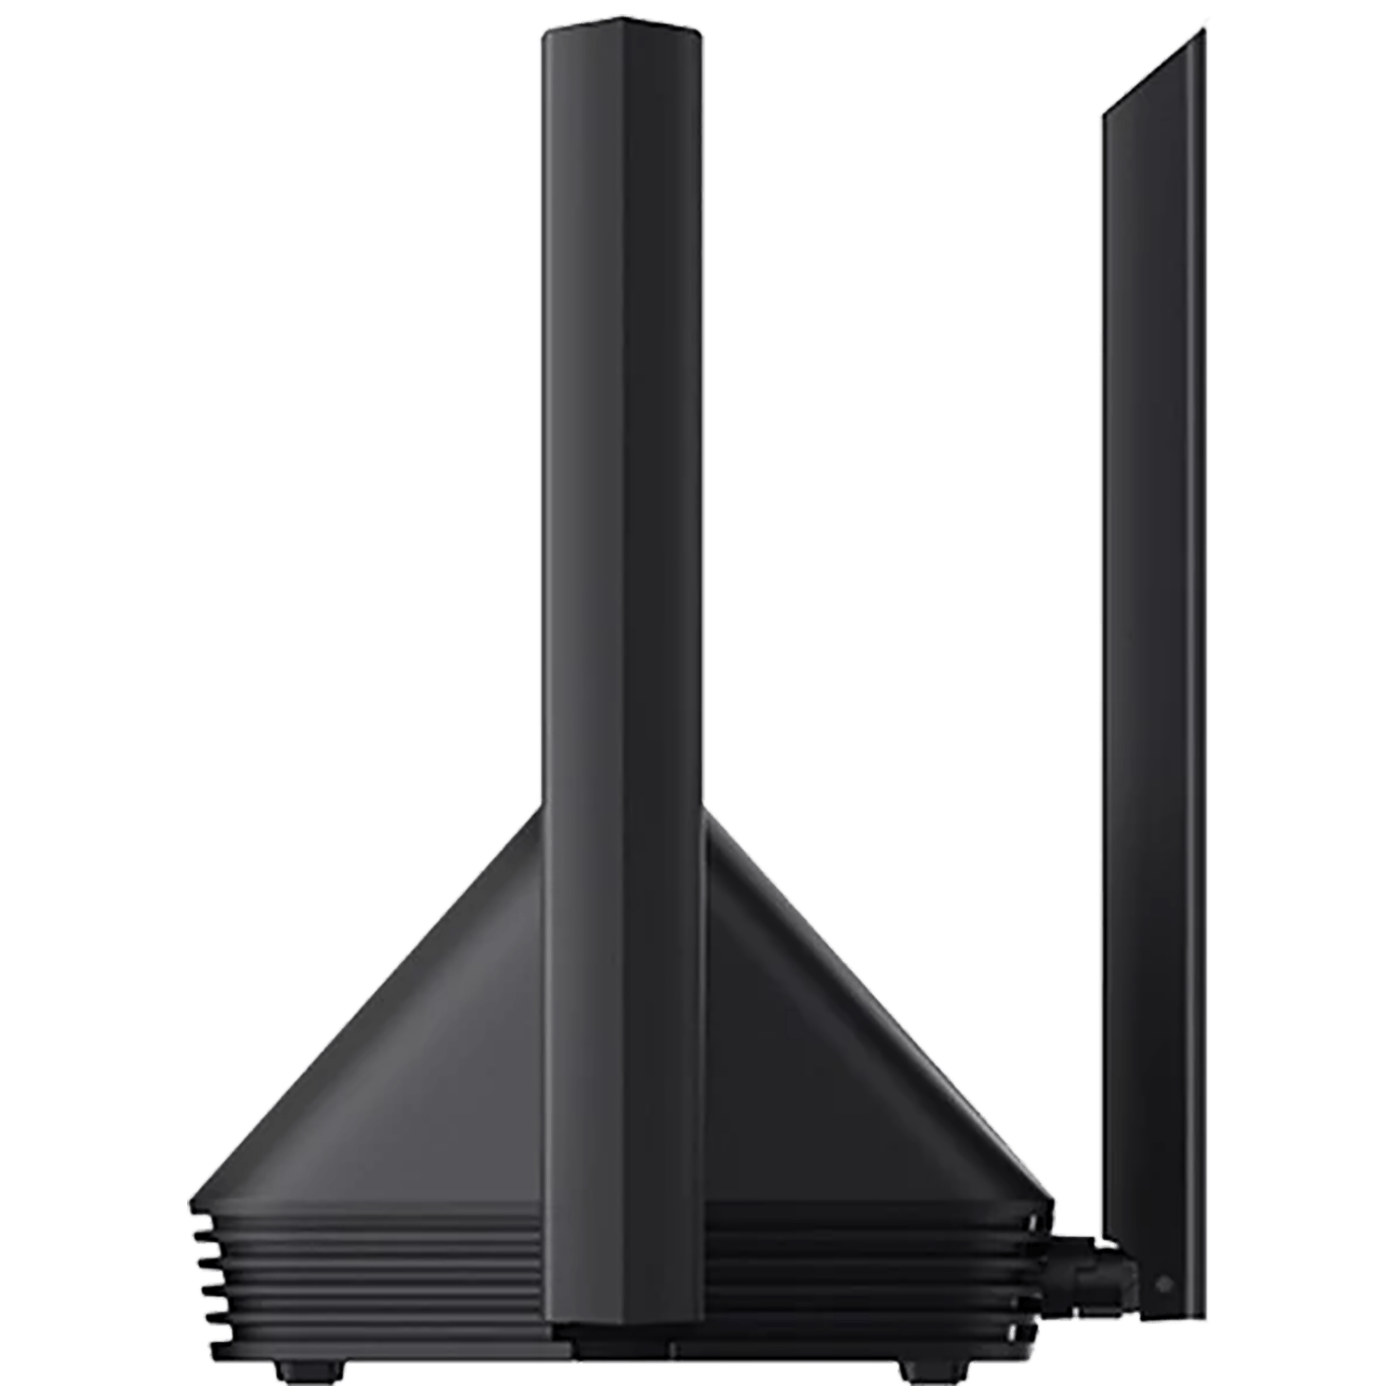 Wireless N Router, 3 porta, 2976 Mbps, 248 user, 2.4/5GHz